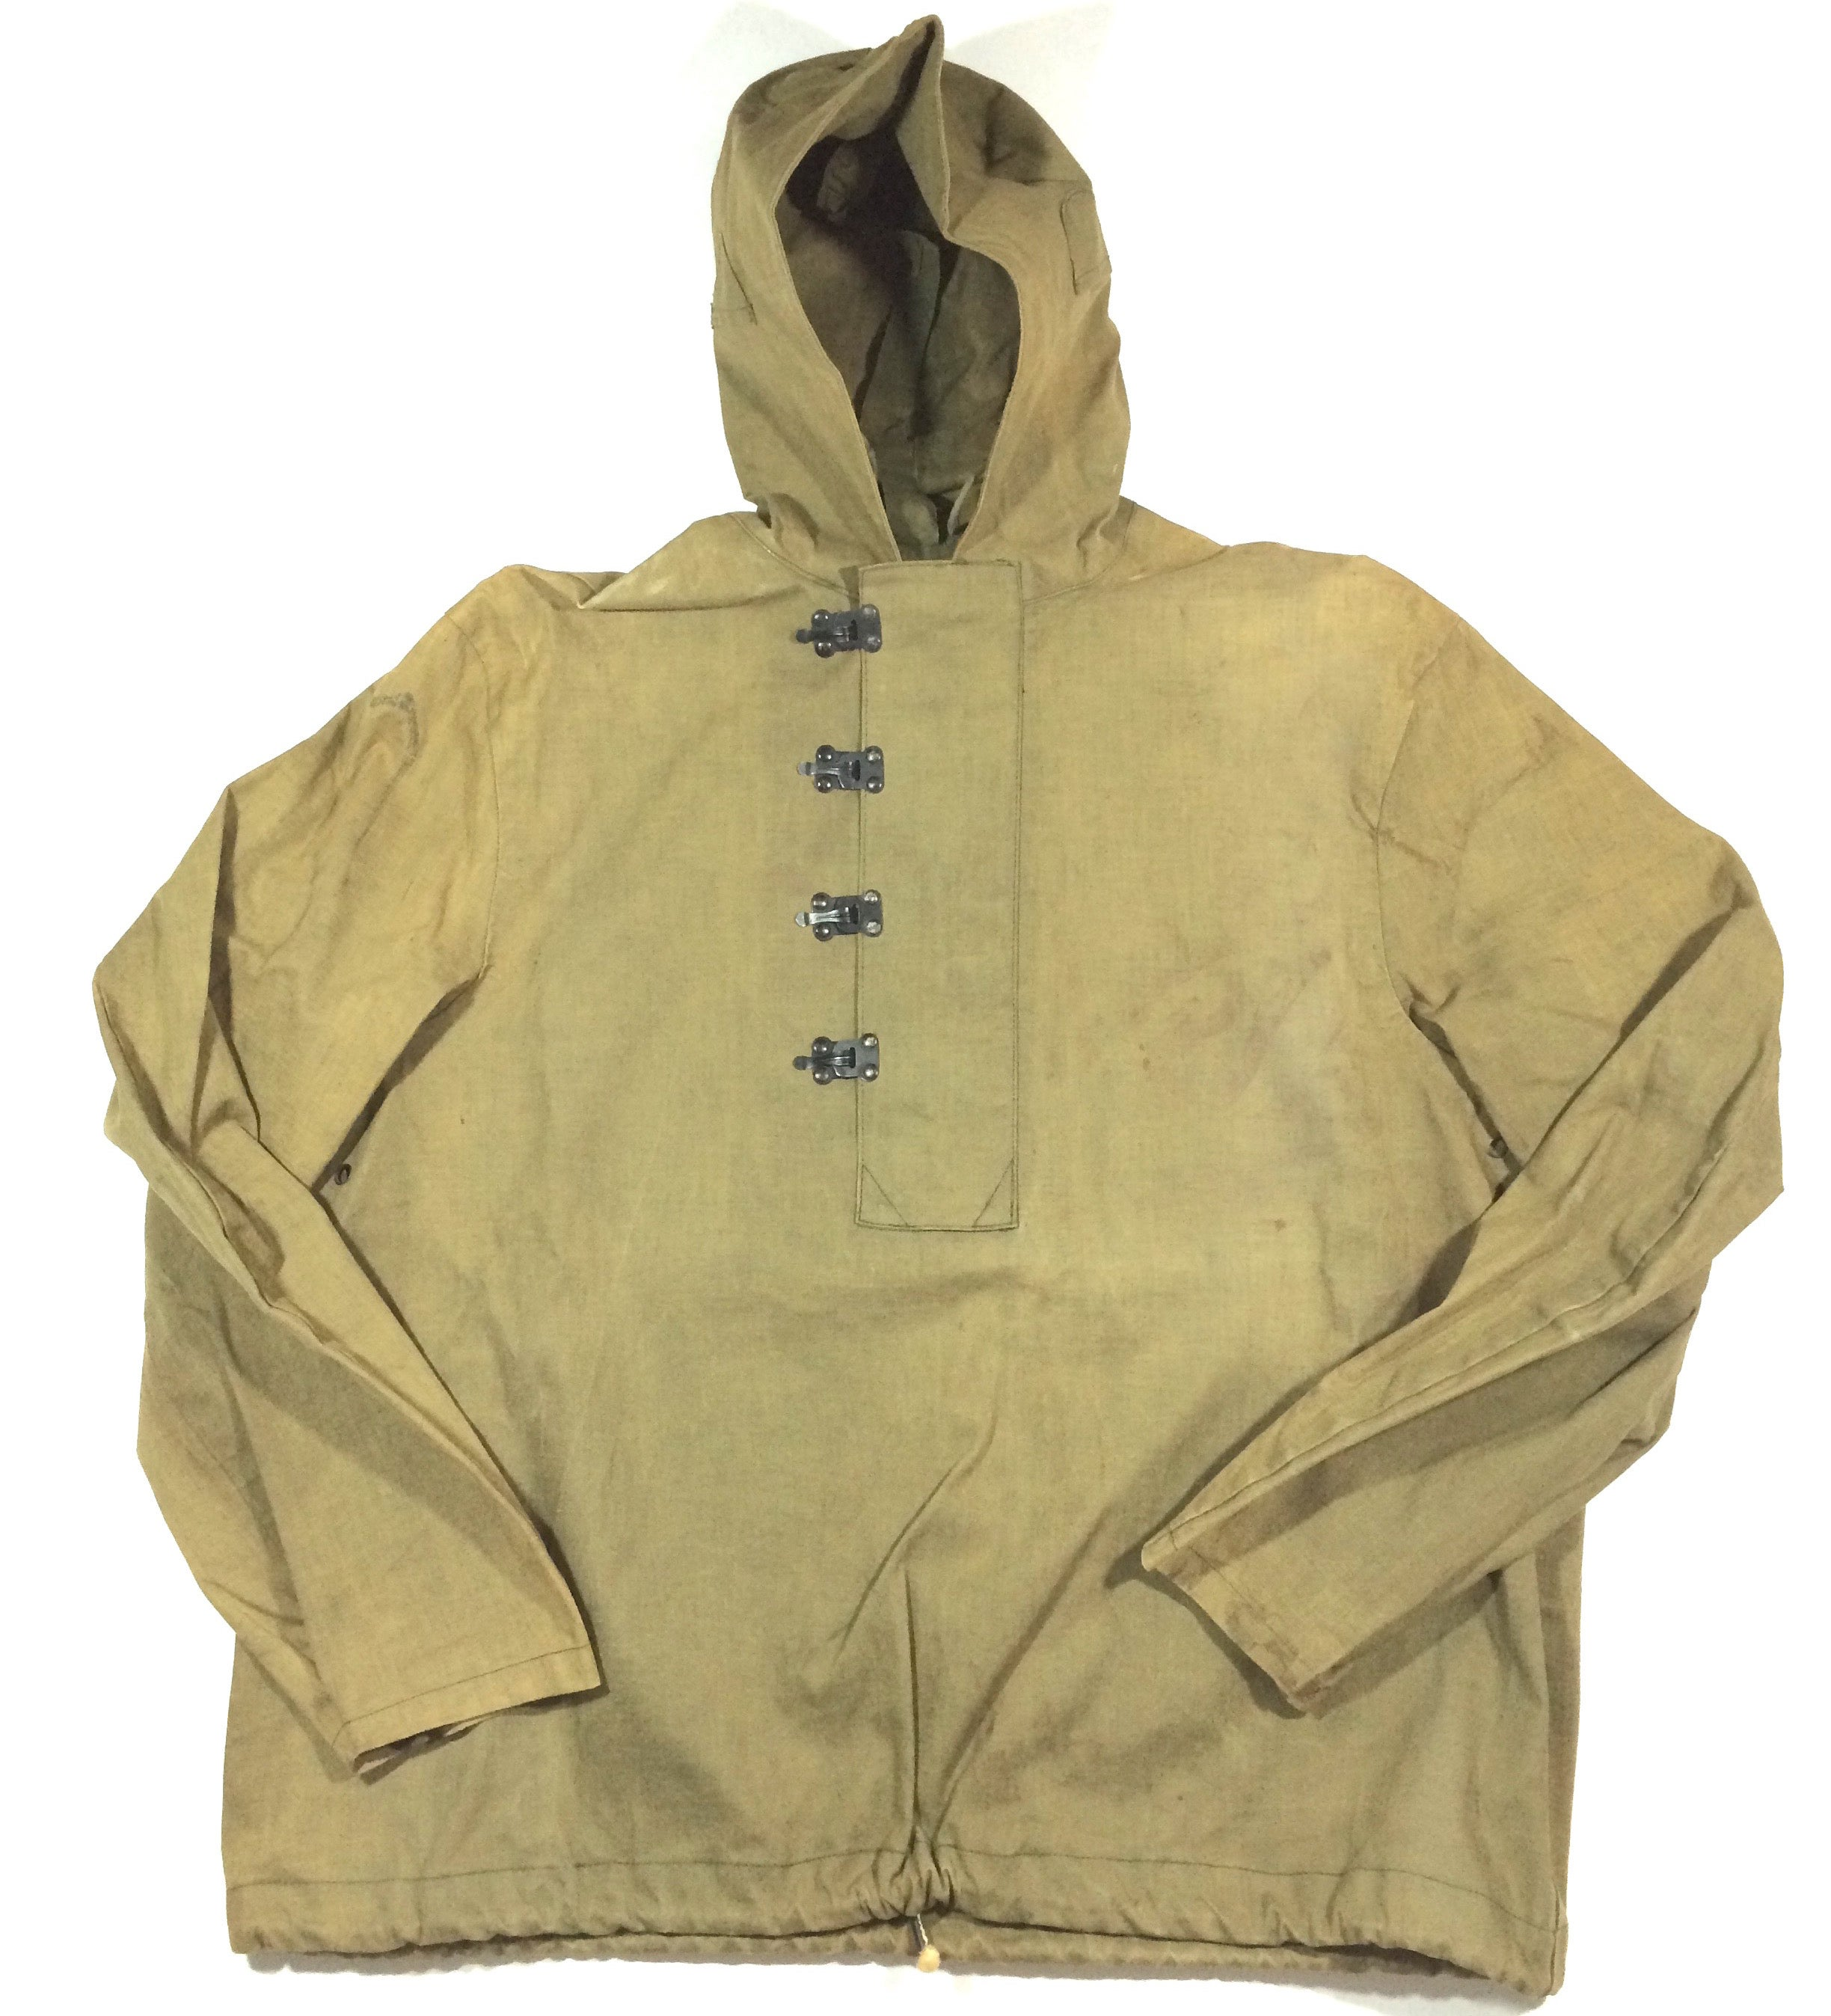 Image of WWII U.S. NAVY FOUL WEATHER PARKA